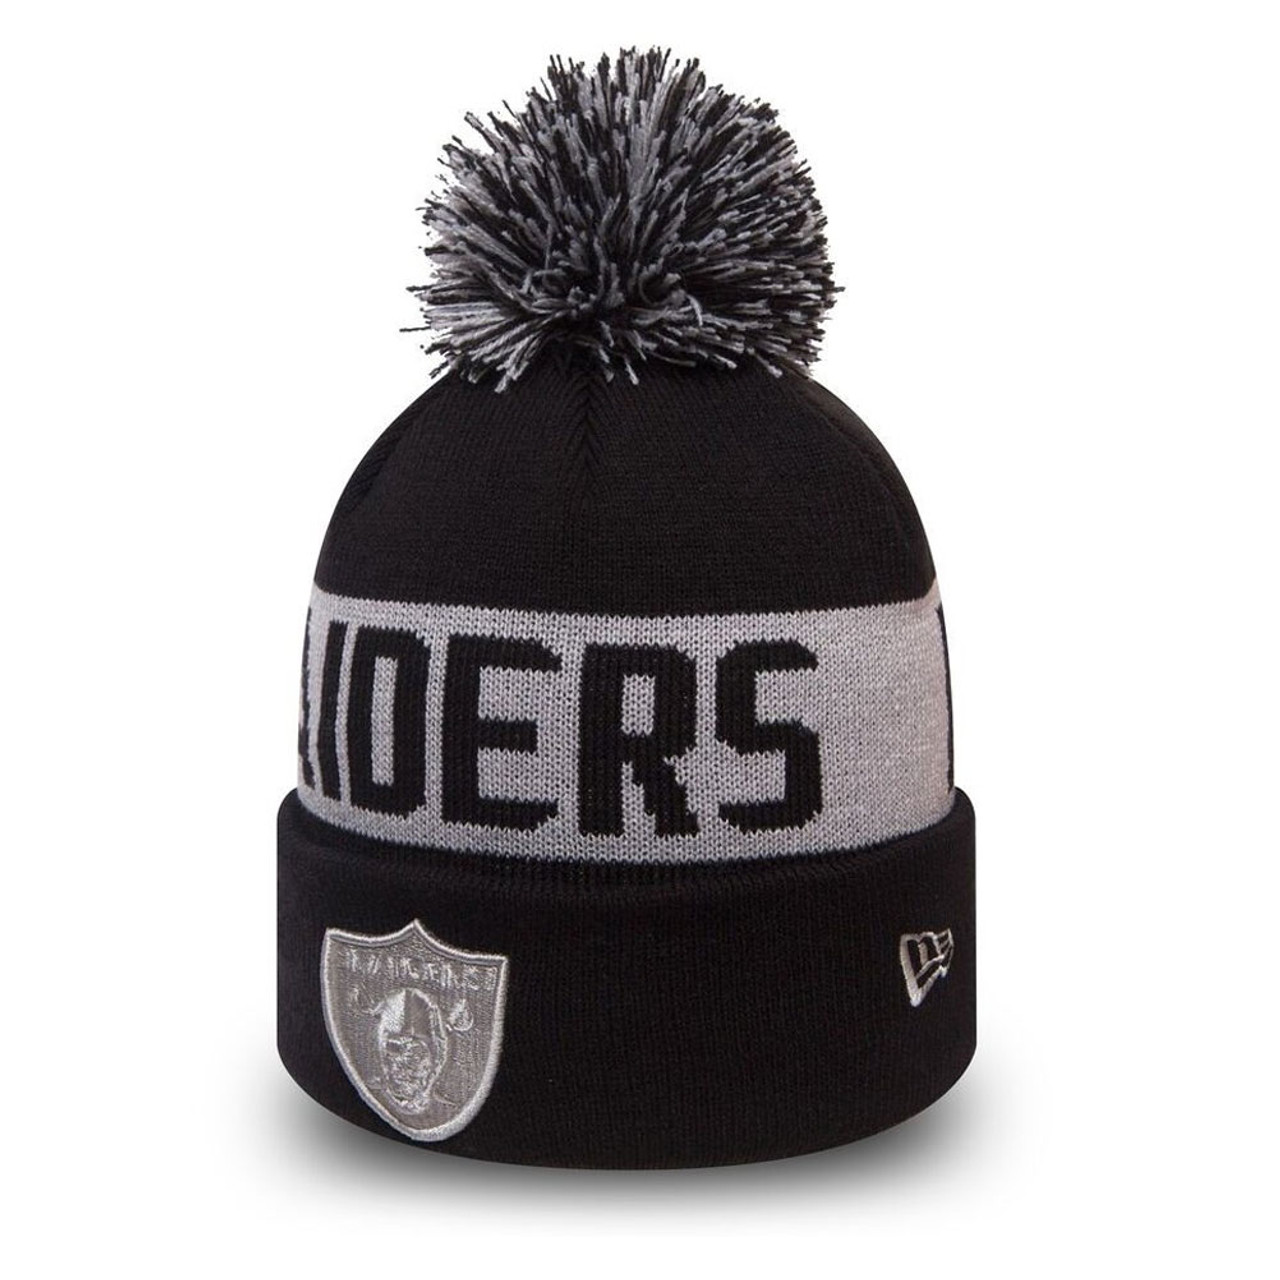 67ebd3de1c2 NEW ERA oakland raiders NFL black collection knit bobble beanie hat ...